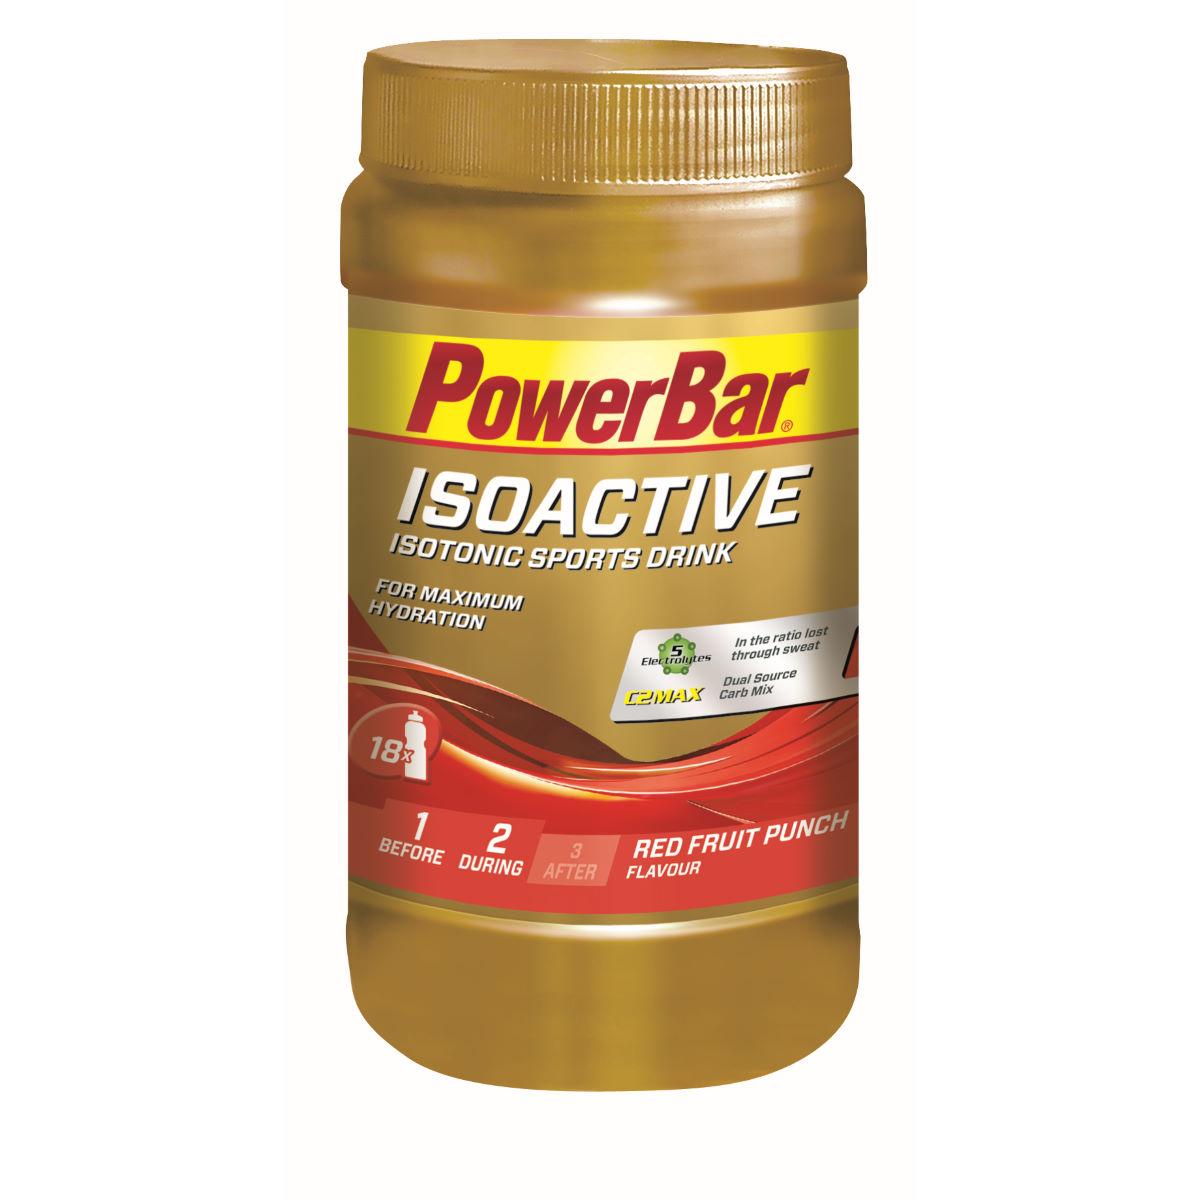 Poudre PowerBar IsoActive (600 g) - 600g 11-20 Red Fruit Punch